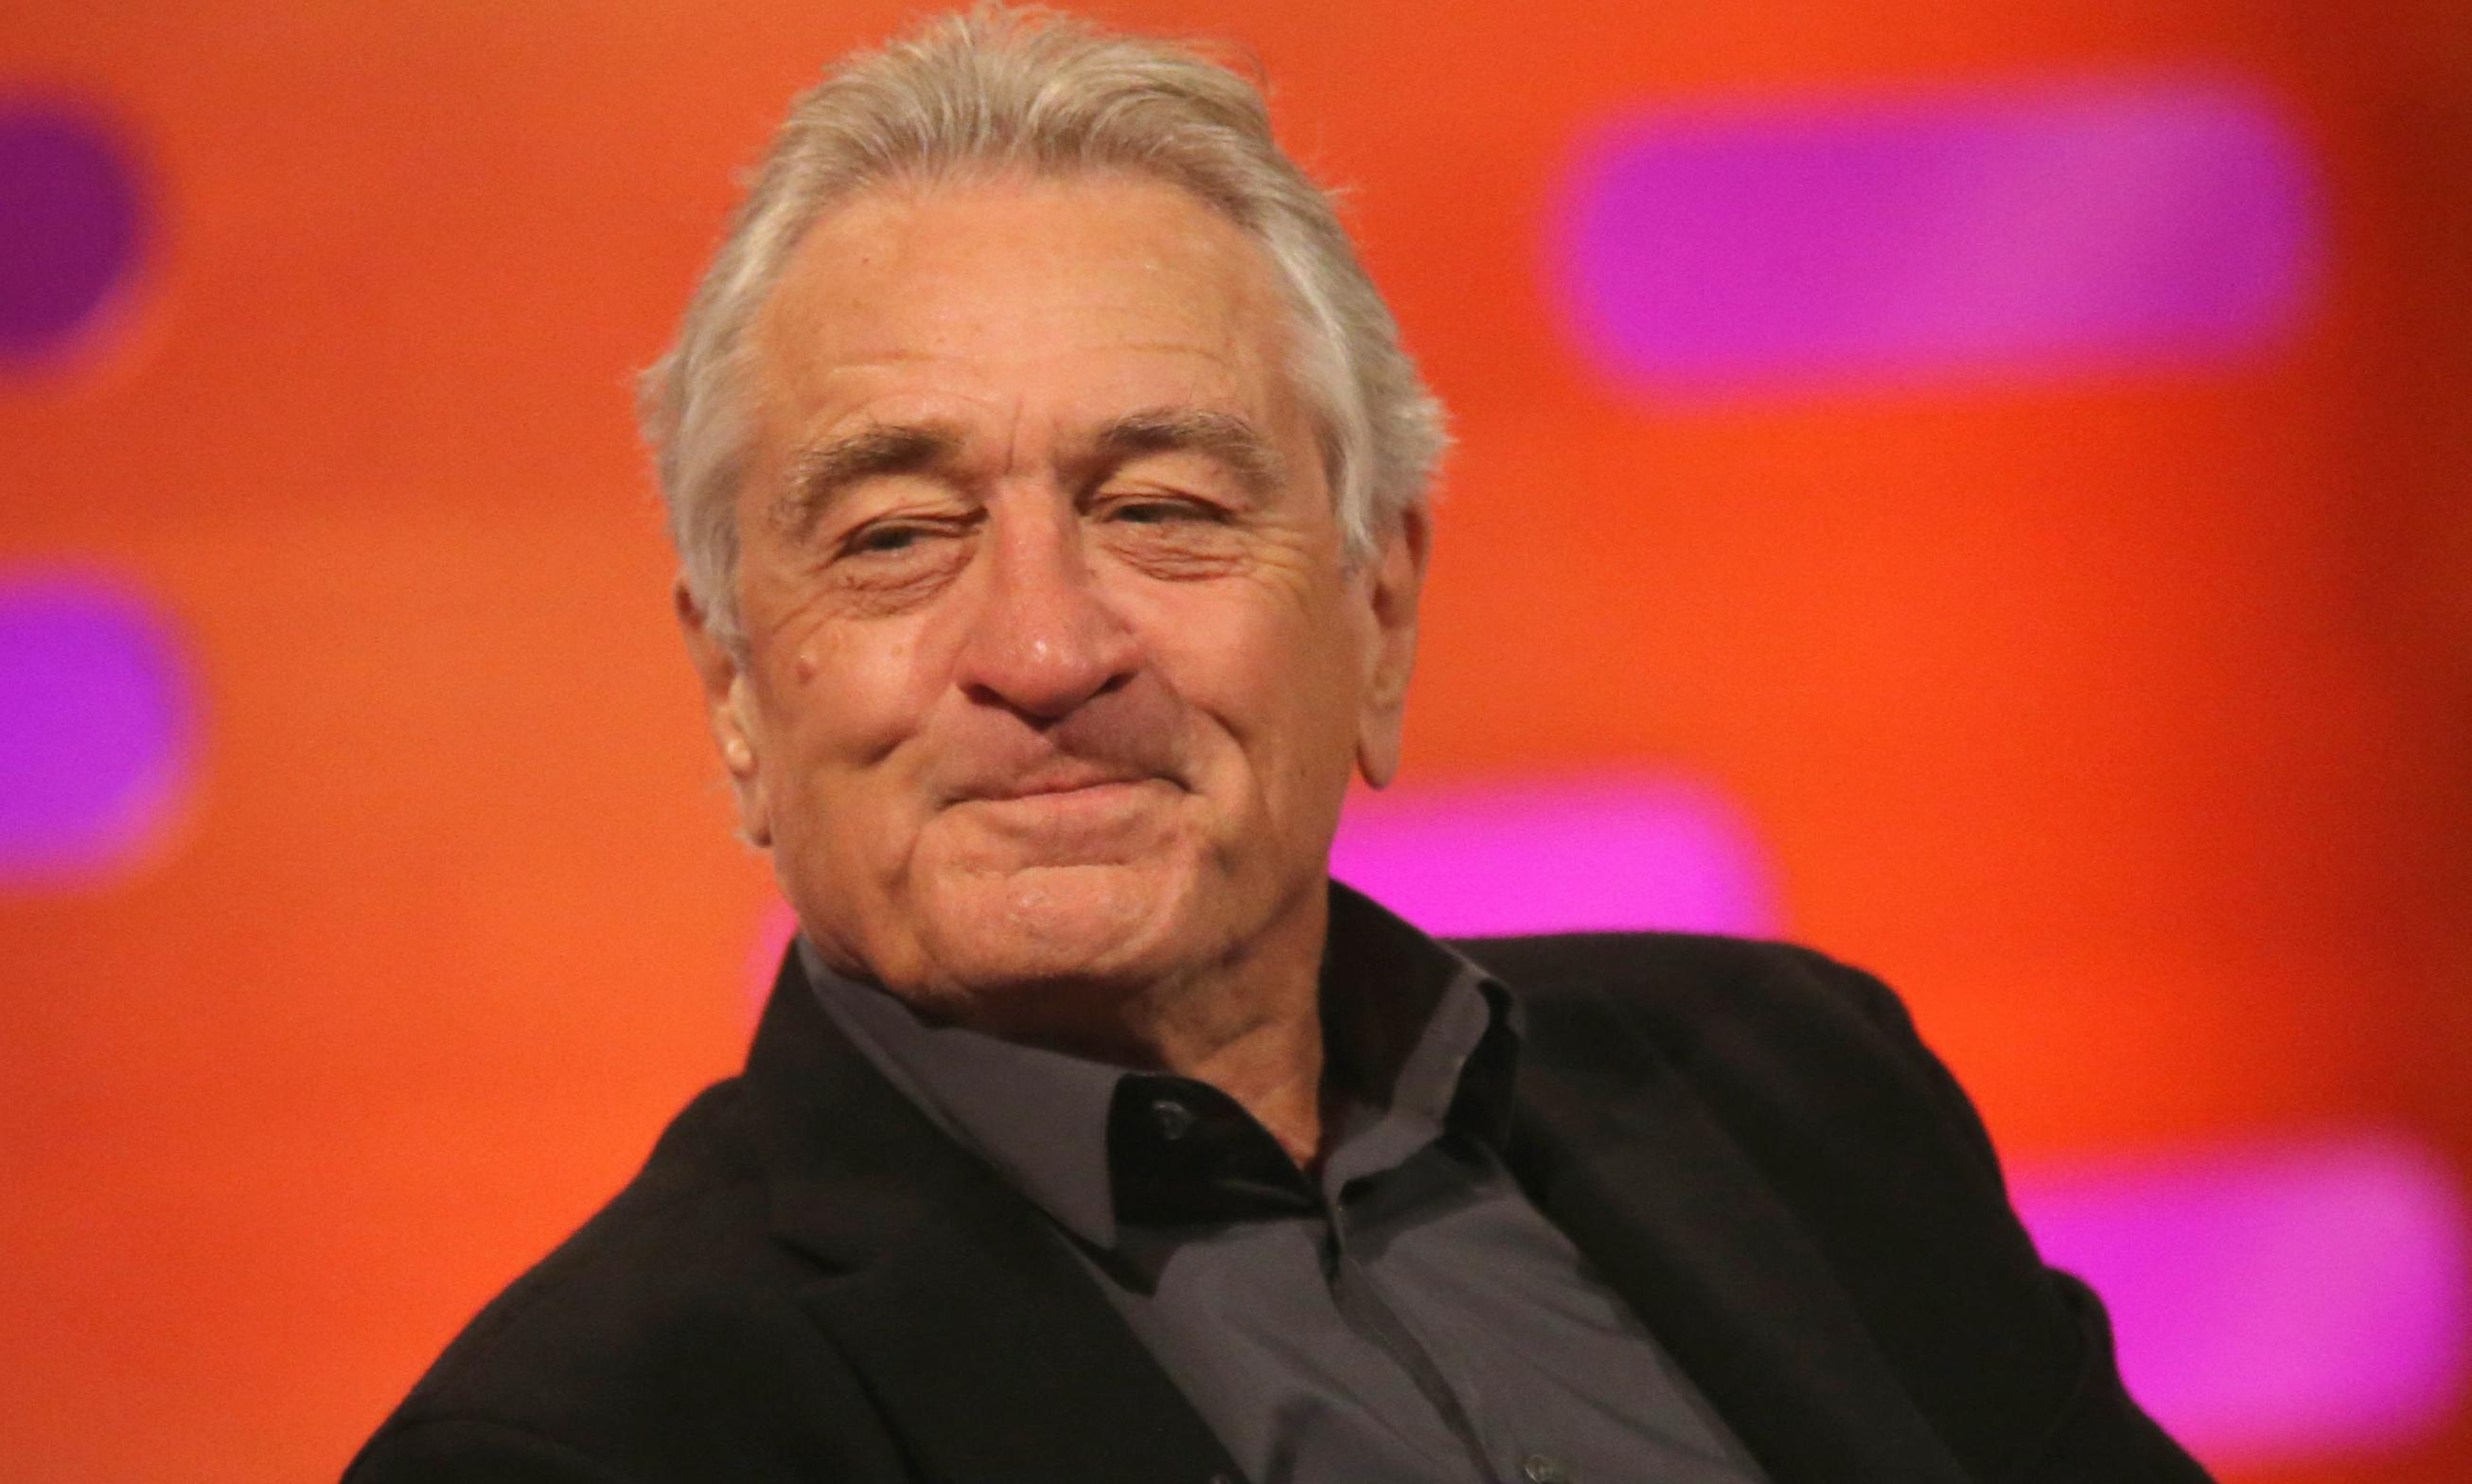 Robert De Niro on Donald Trump: 'I can't wait to see him in jail'